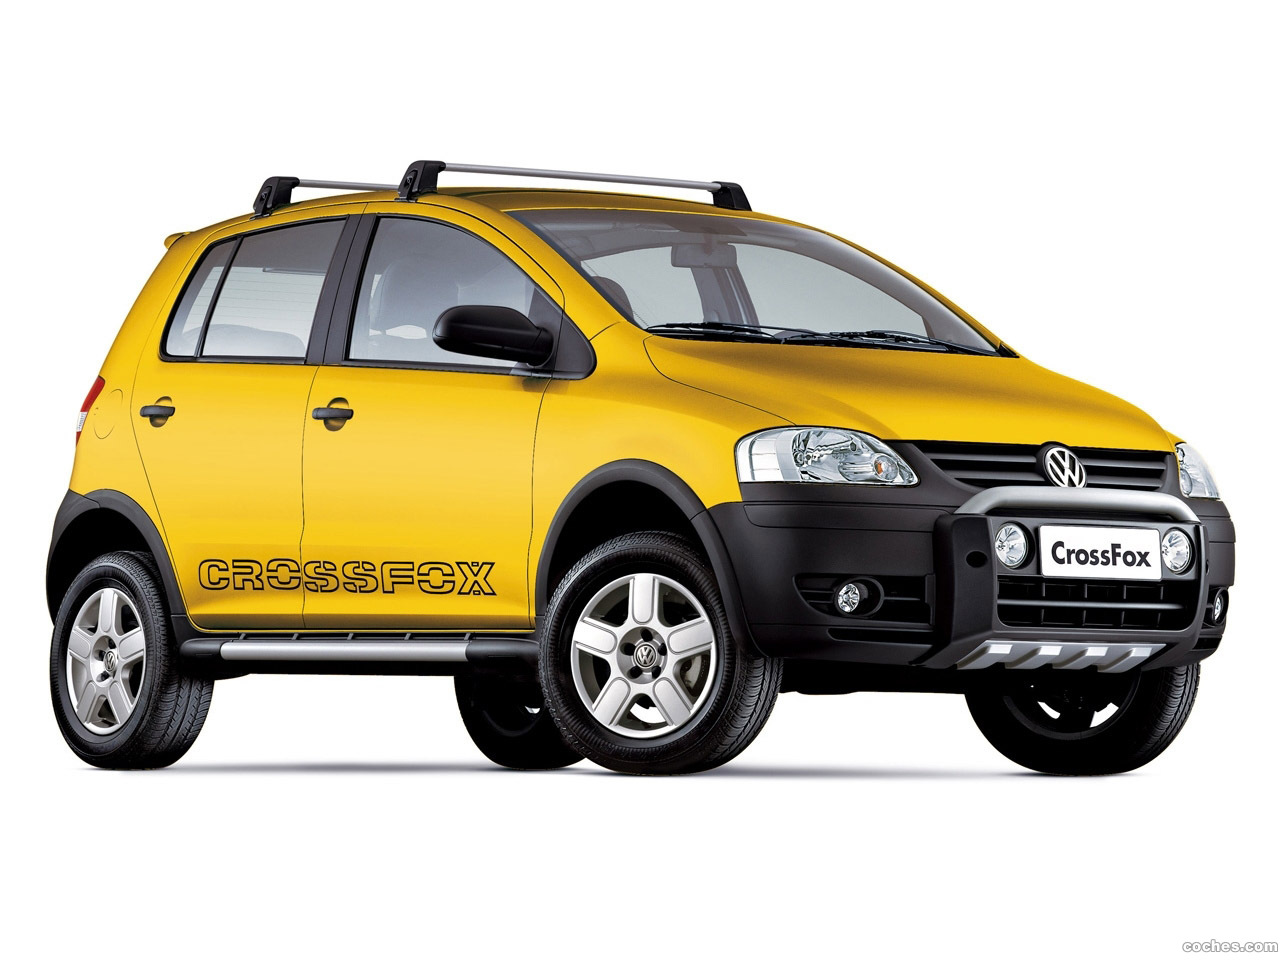 autobytel new car prices used cars for sale auto autos specs